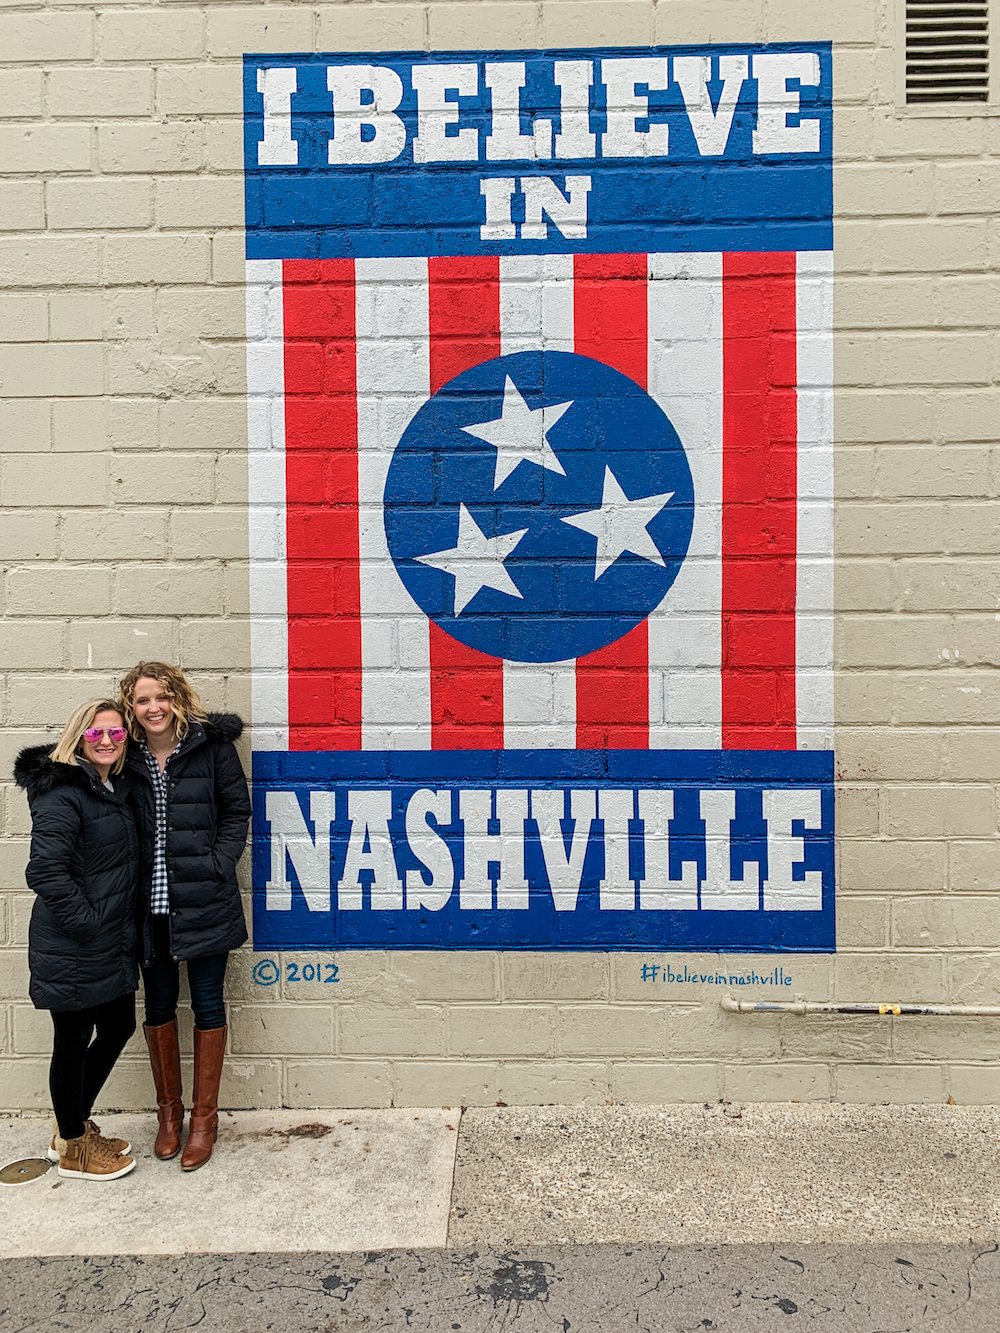 Nashville travel guide, Nashville Tennessee travel guide, Nashville restaurants, what to do in Nashville, Nashville airbnb, Nashville hotel, Nashville girls weekend, Nashville bachelorette party, what to do in Nashville, Nashville murals, I believe in Nashville mural, where to eat in Nashville, Nashville's best restaurants, HOTELette Nashville